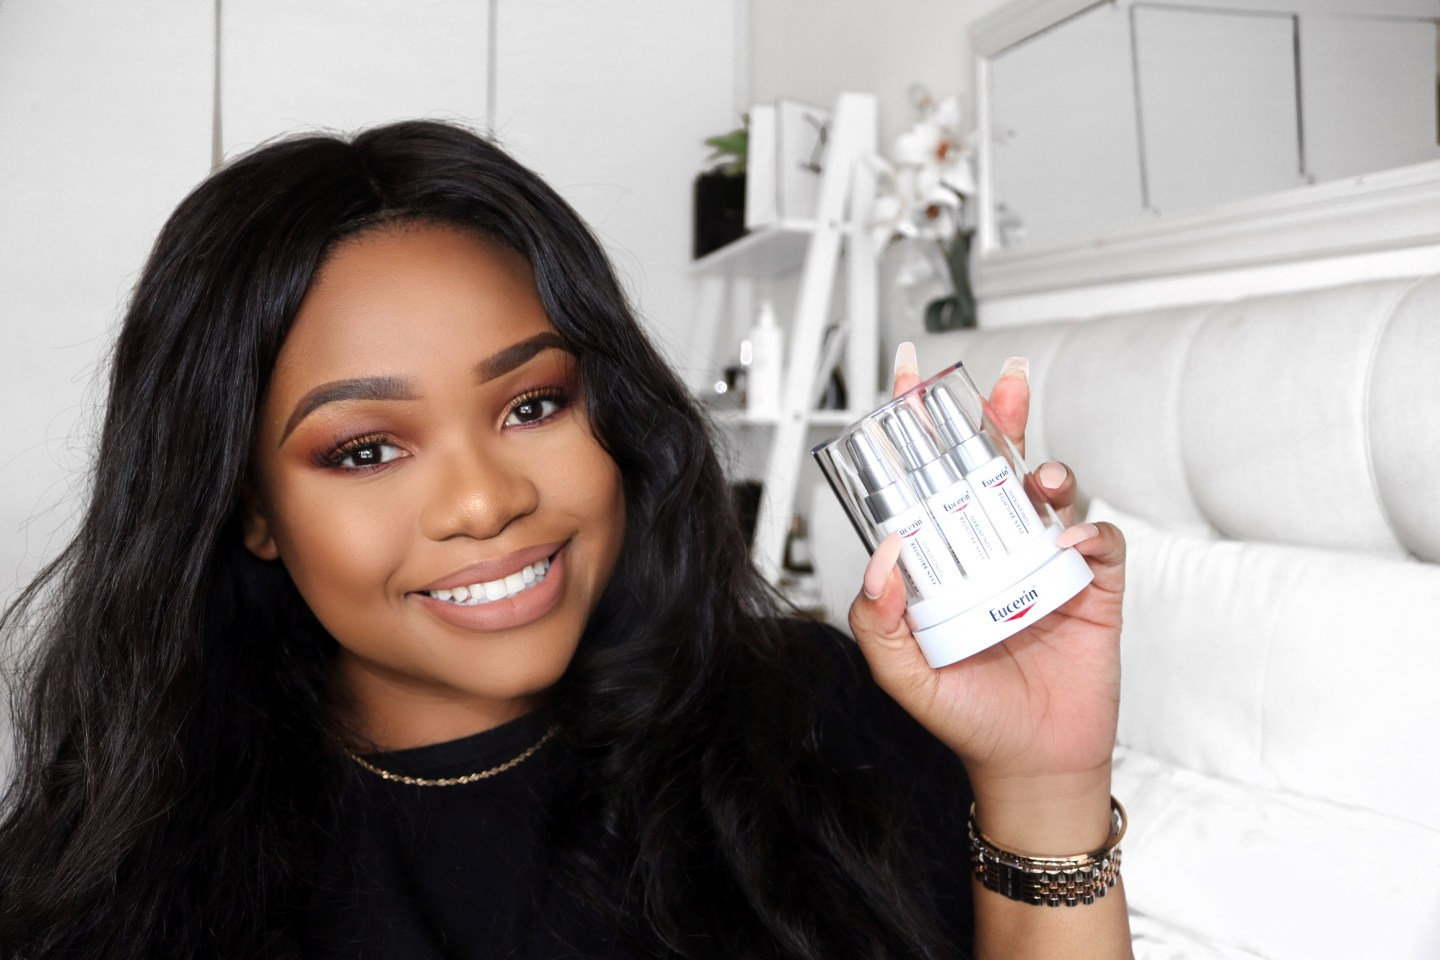 EUCERIN EVEN BRIGHTER RESULTS & GIVEAWAY WINNER